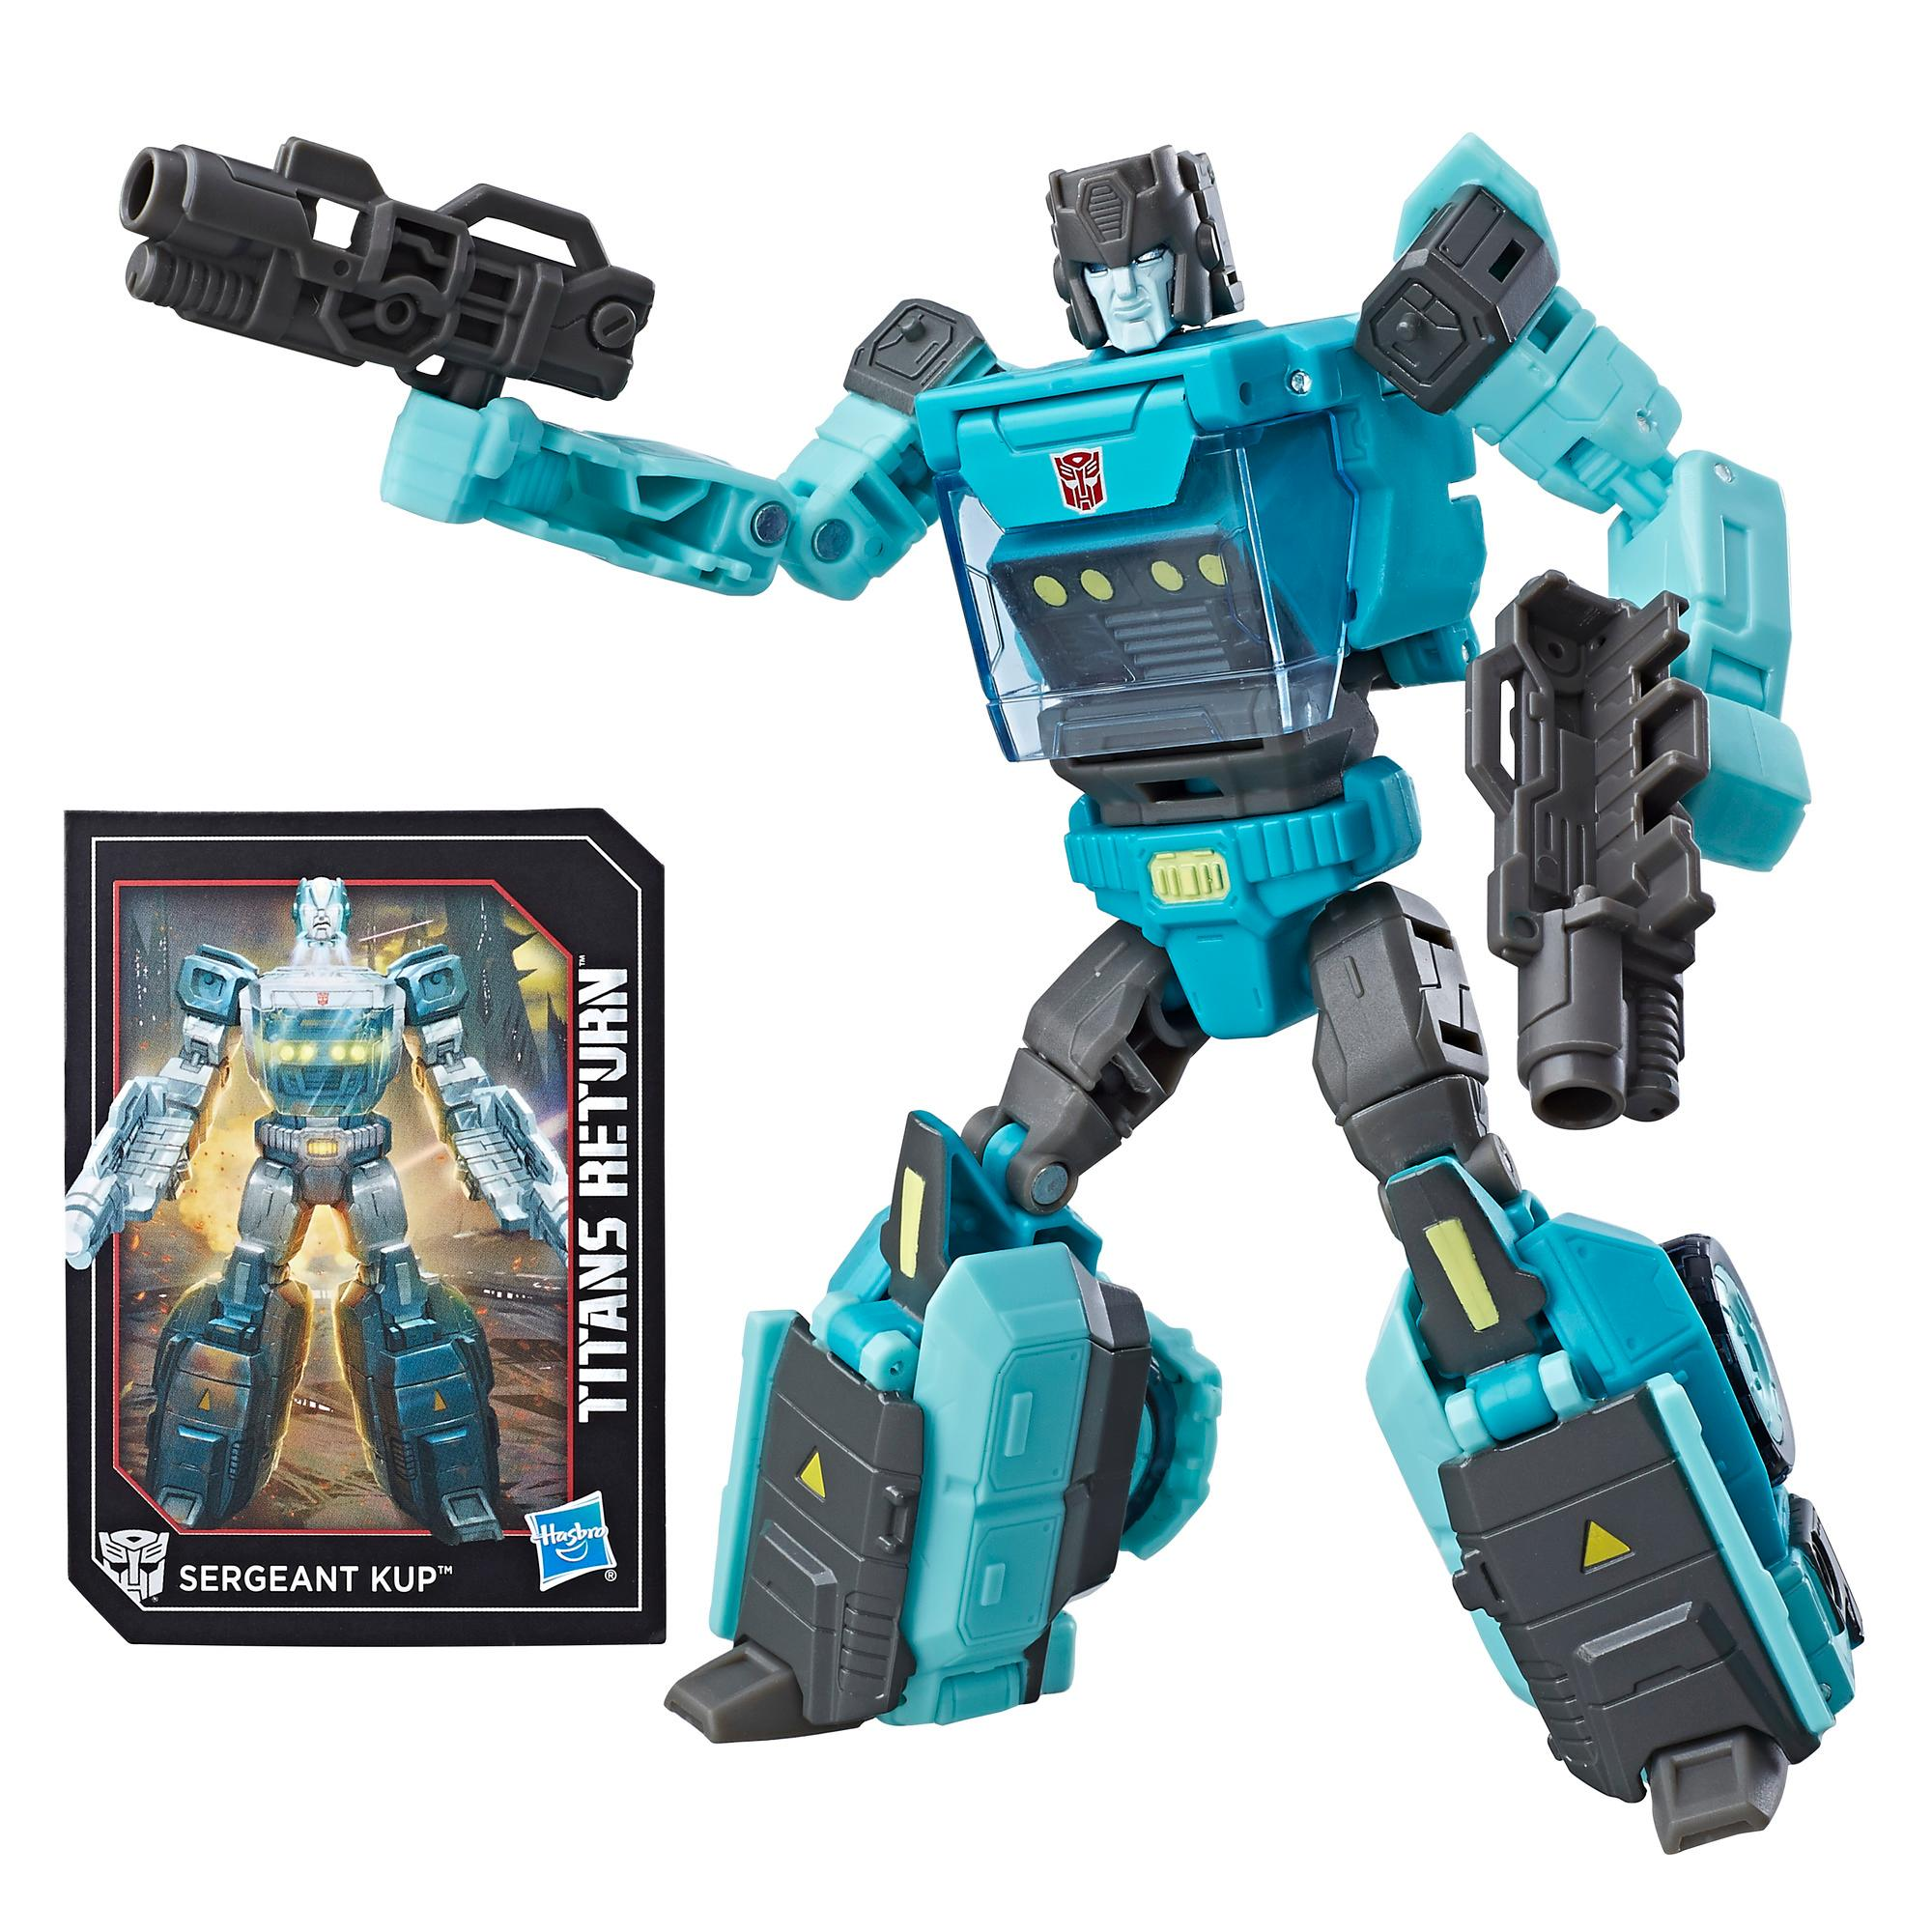 Transformers Generations Titans Return Deluxe SERGEANT KUP